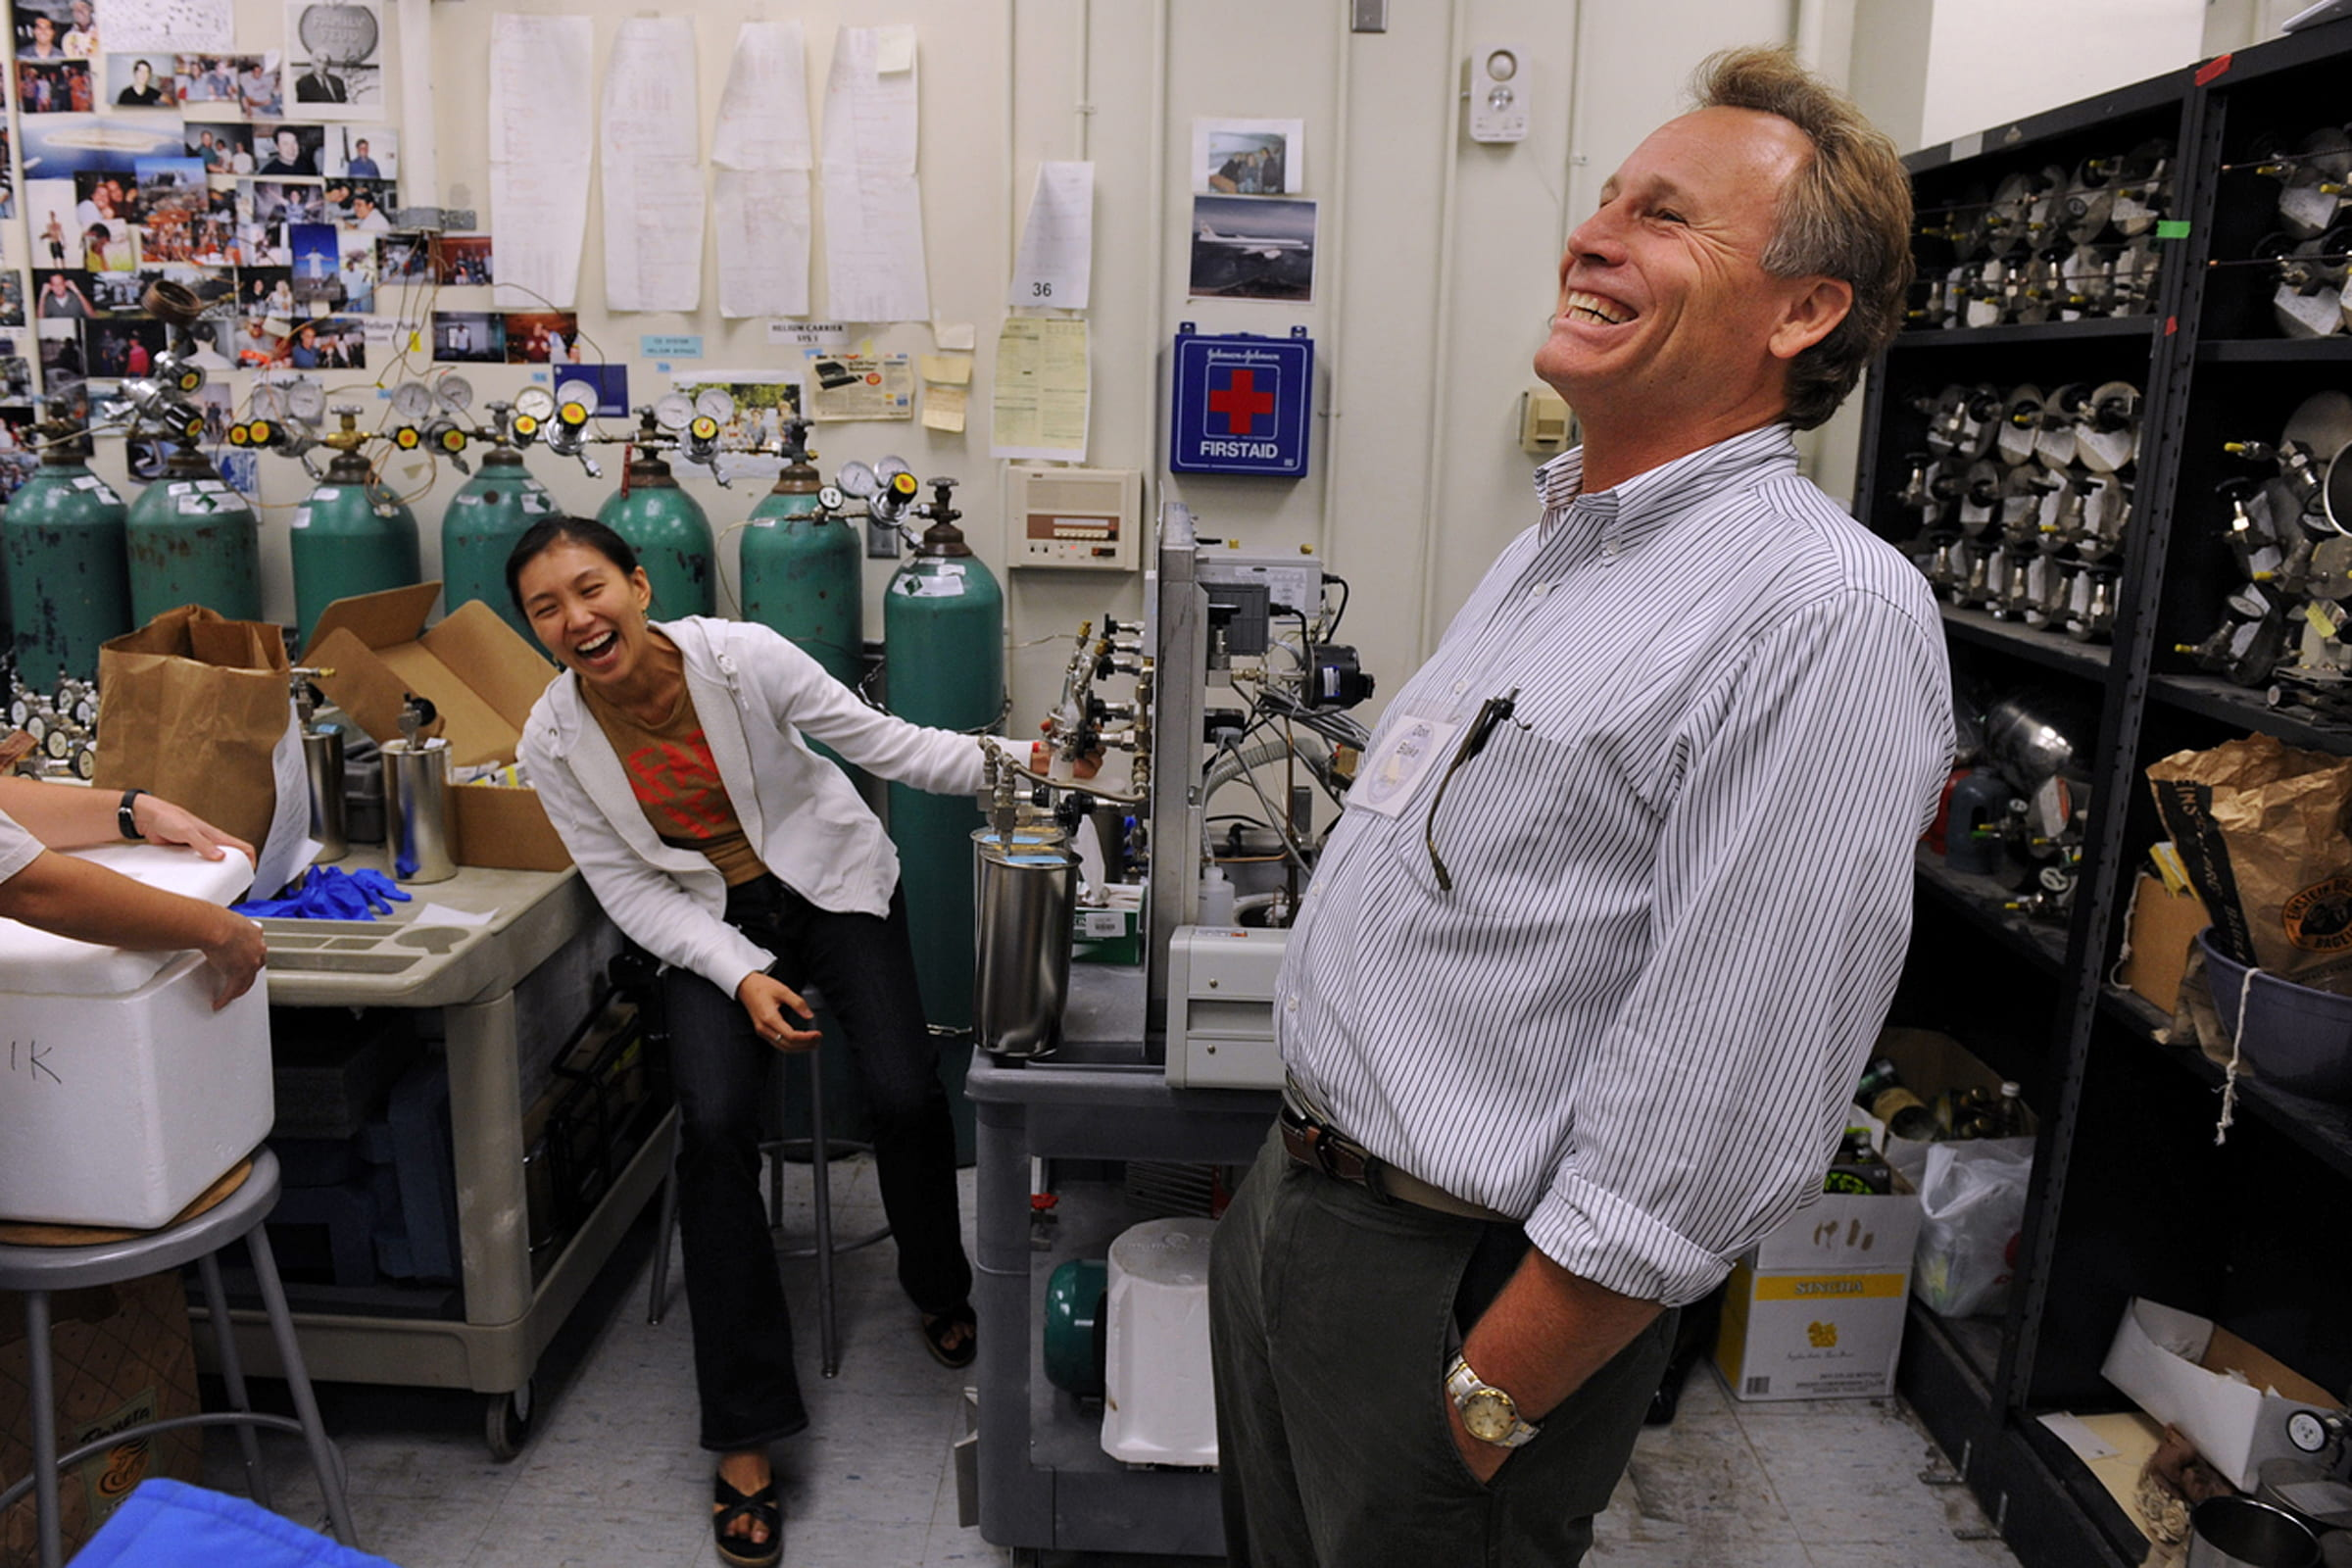 UCI chemistry department chair Donald Blake and grad student Julie Lee  sc 1 st  UCI News & 8623497390_f37154fb91_o | UCI News | UCI